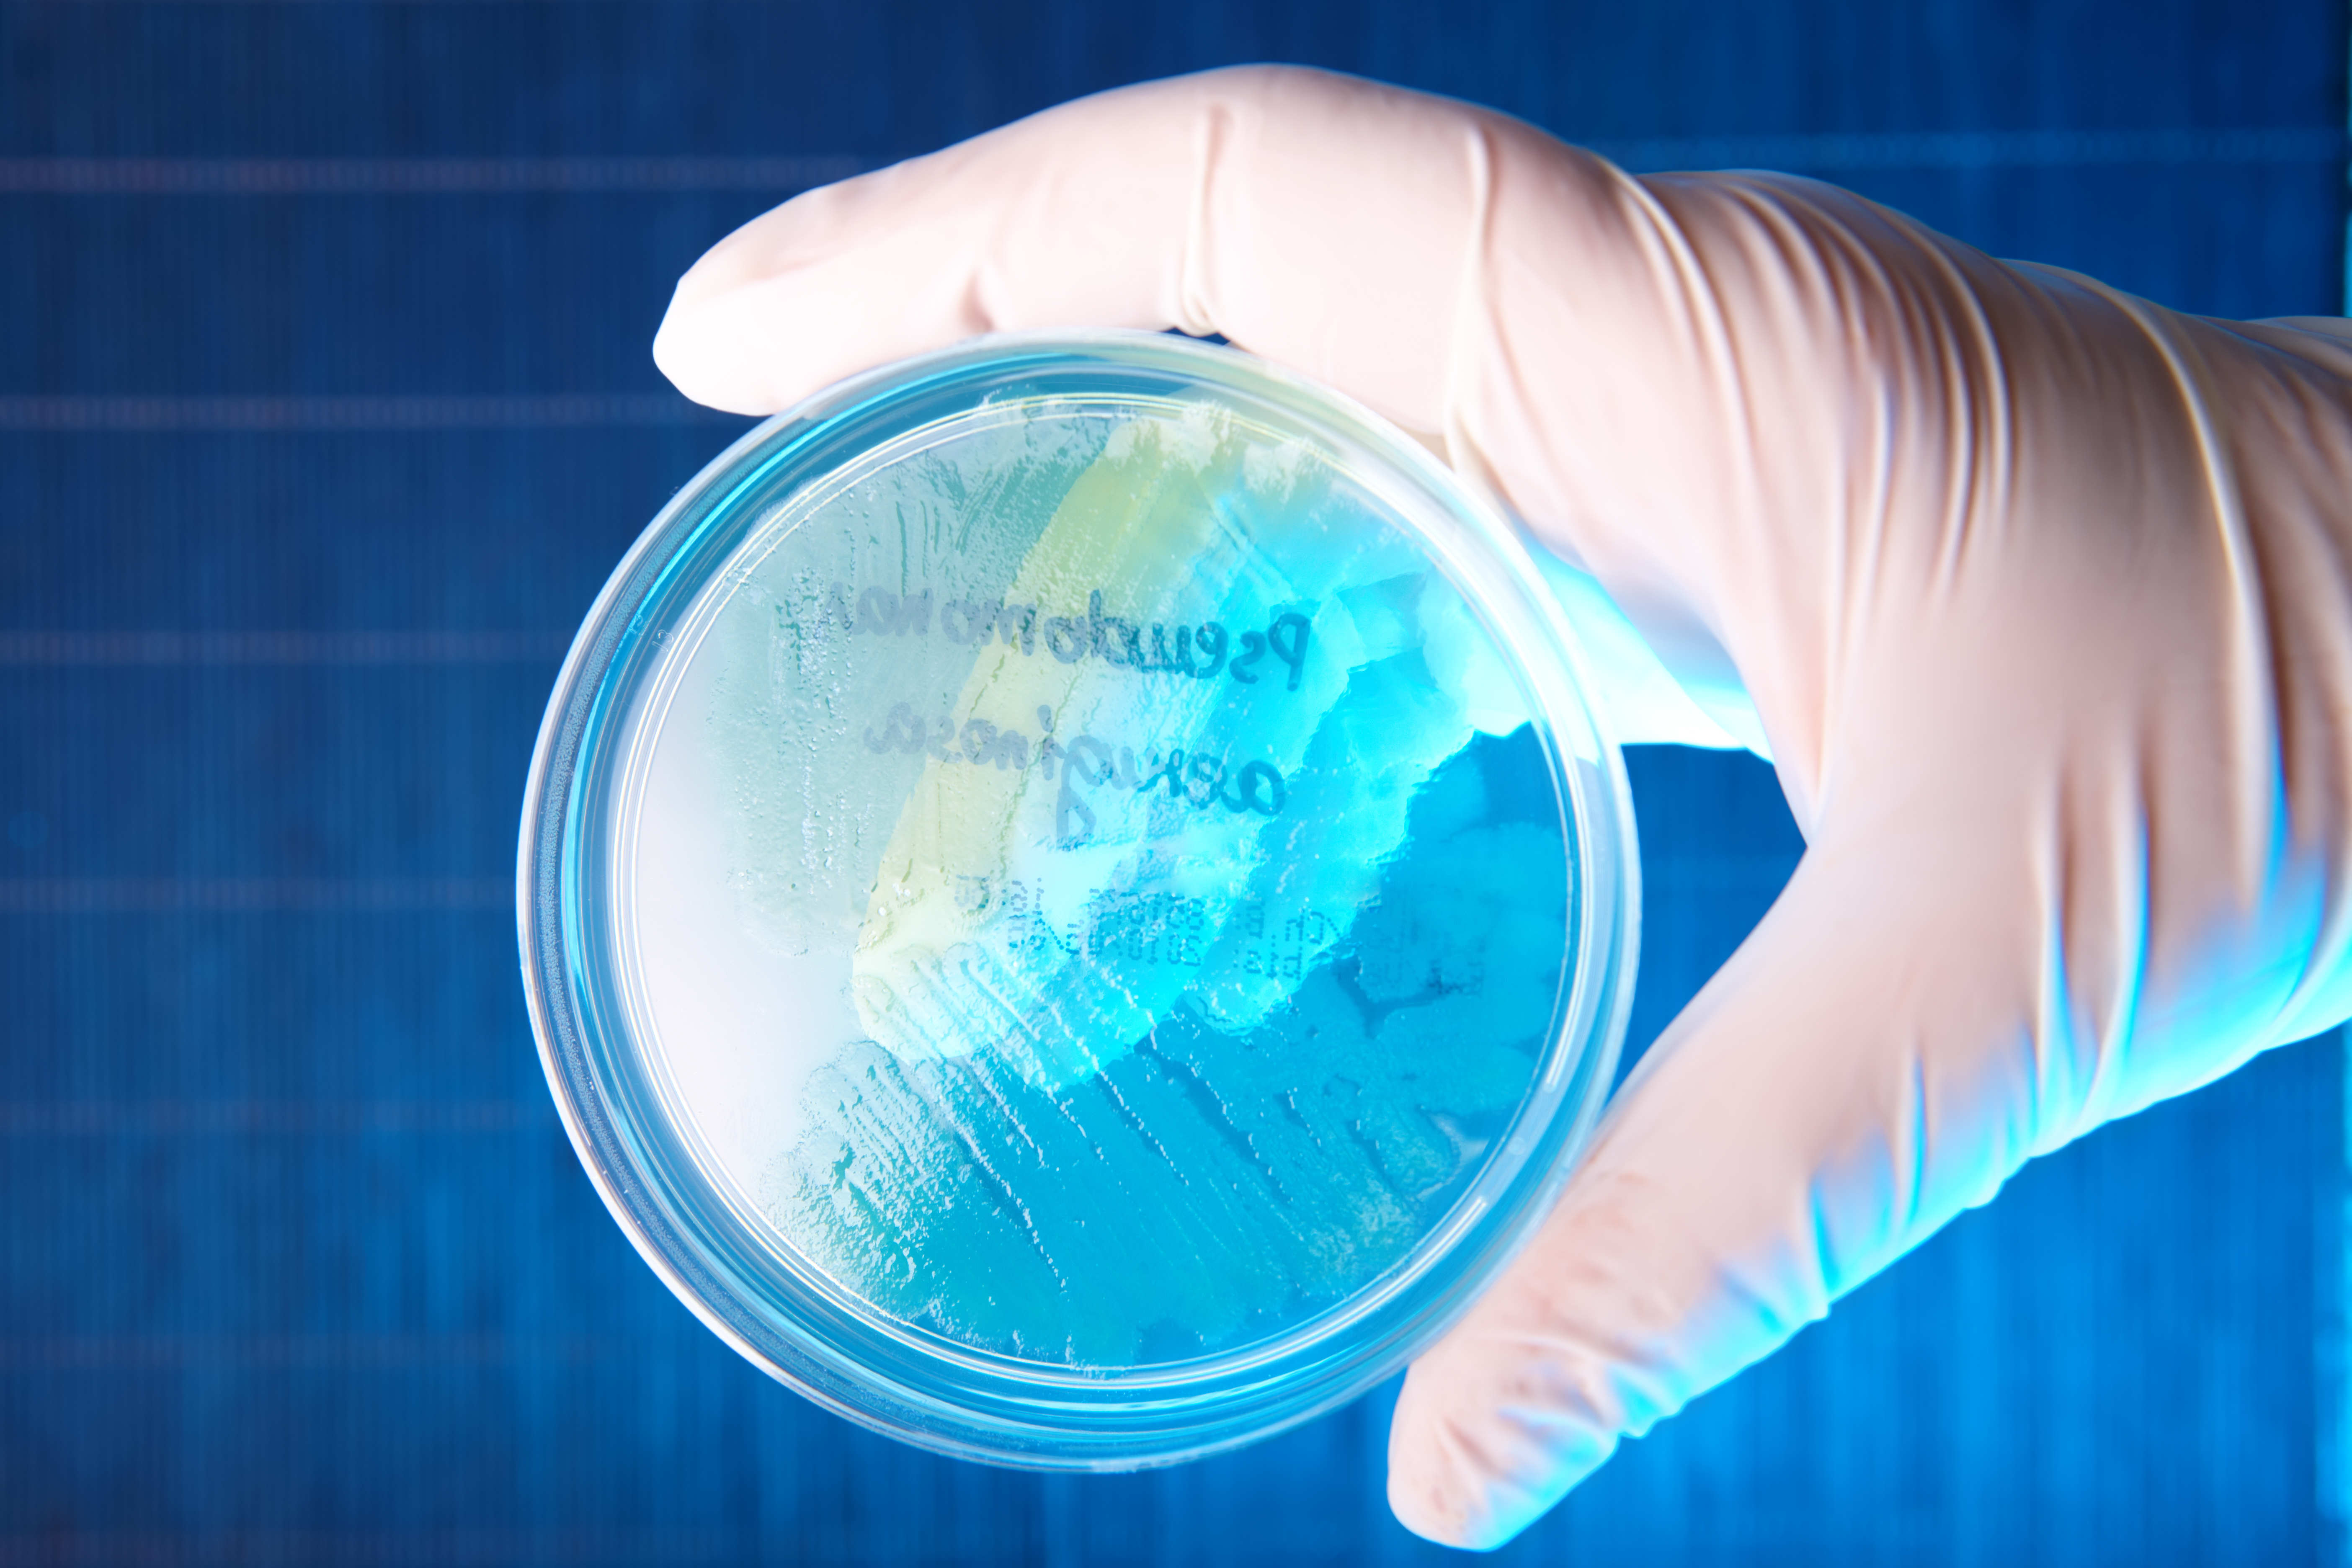 CF bacterial infections